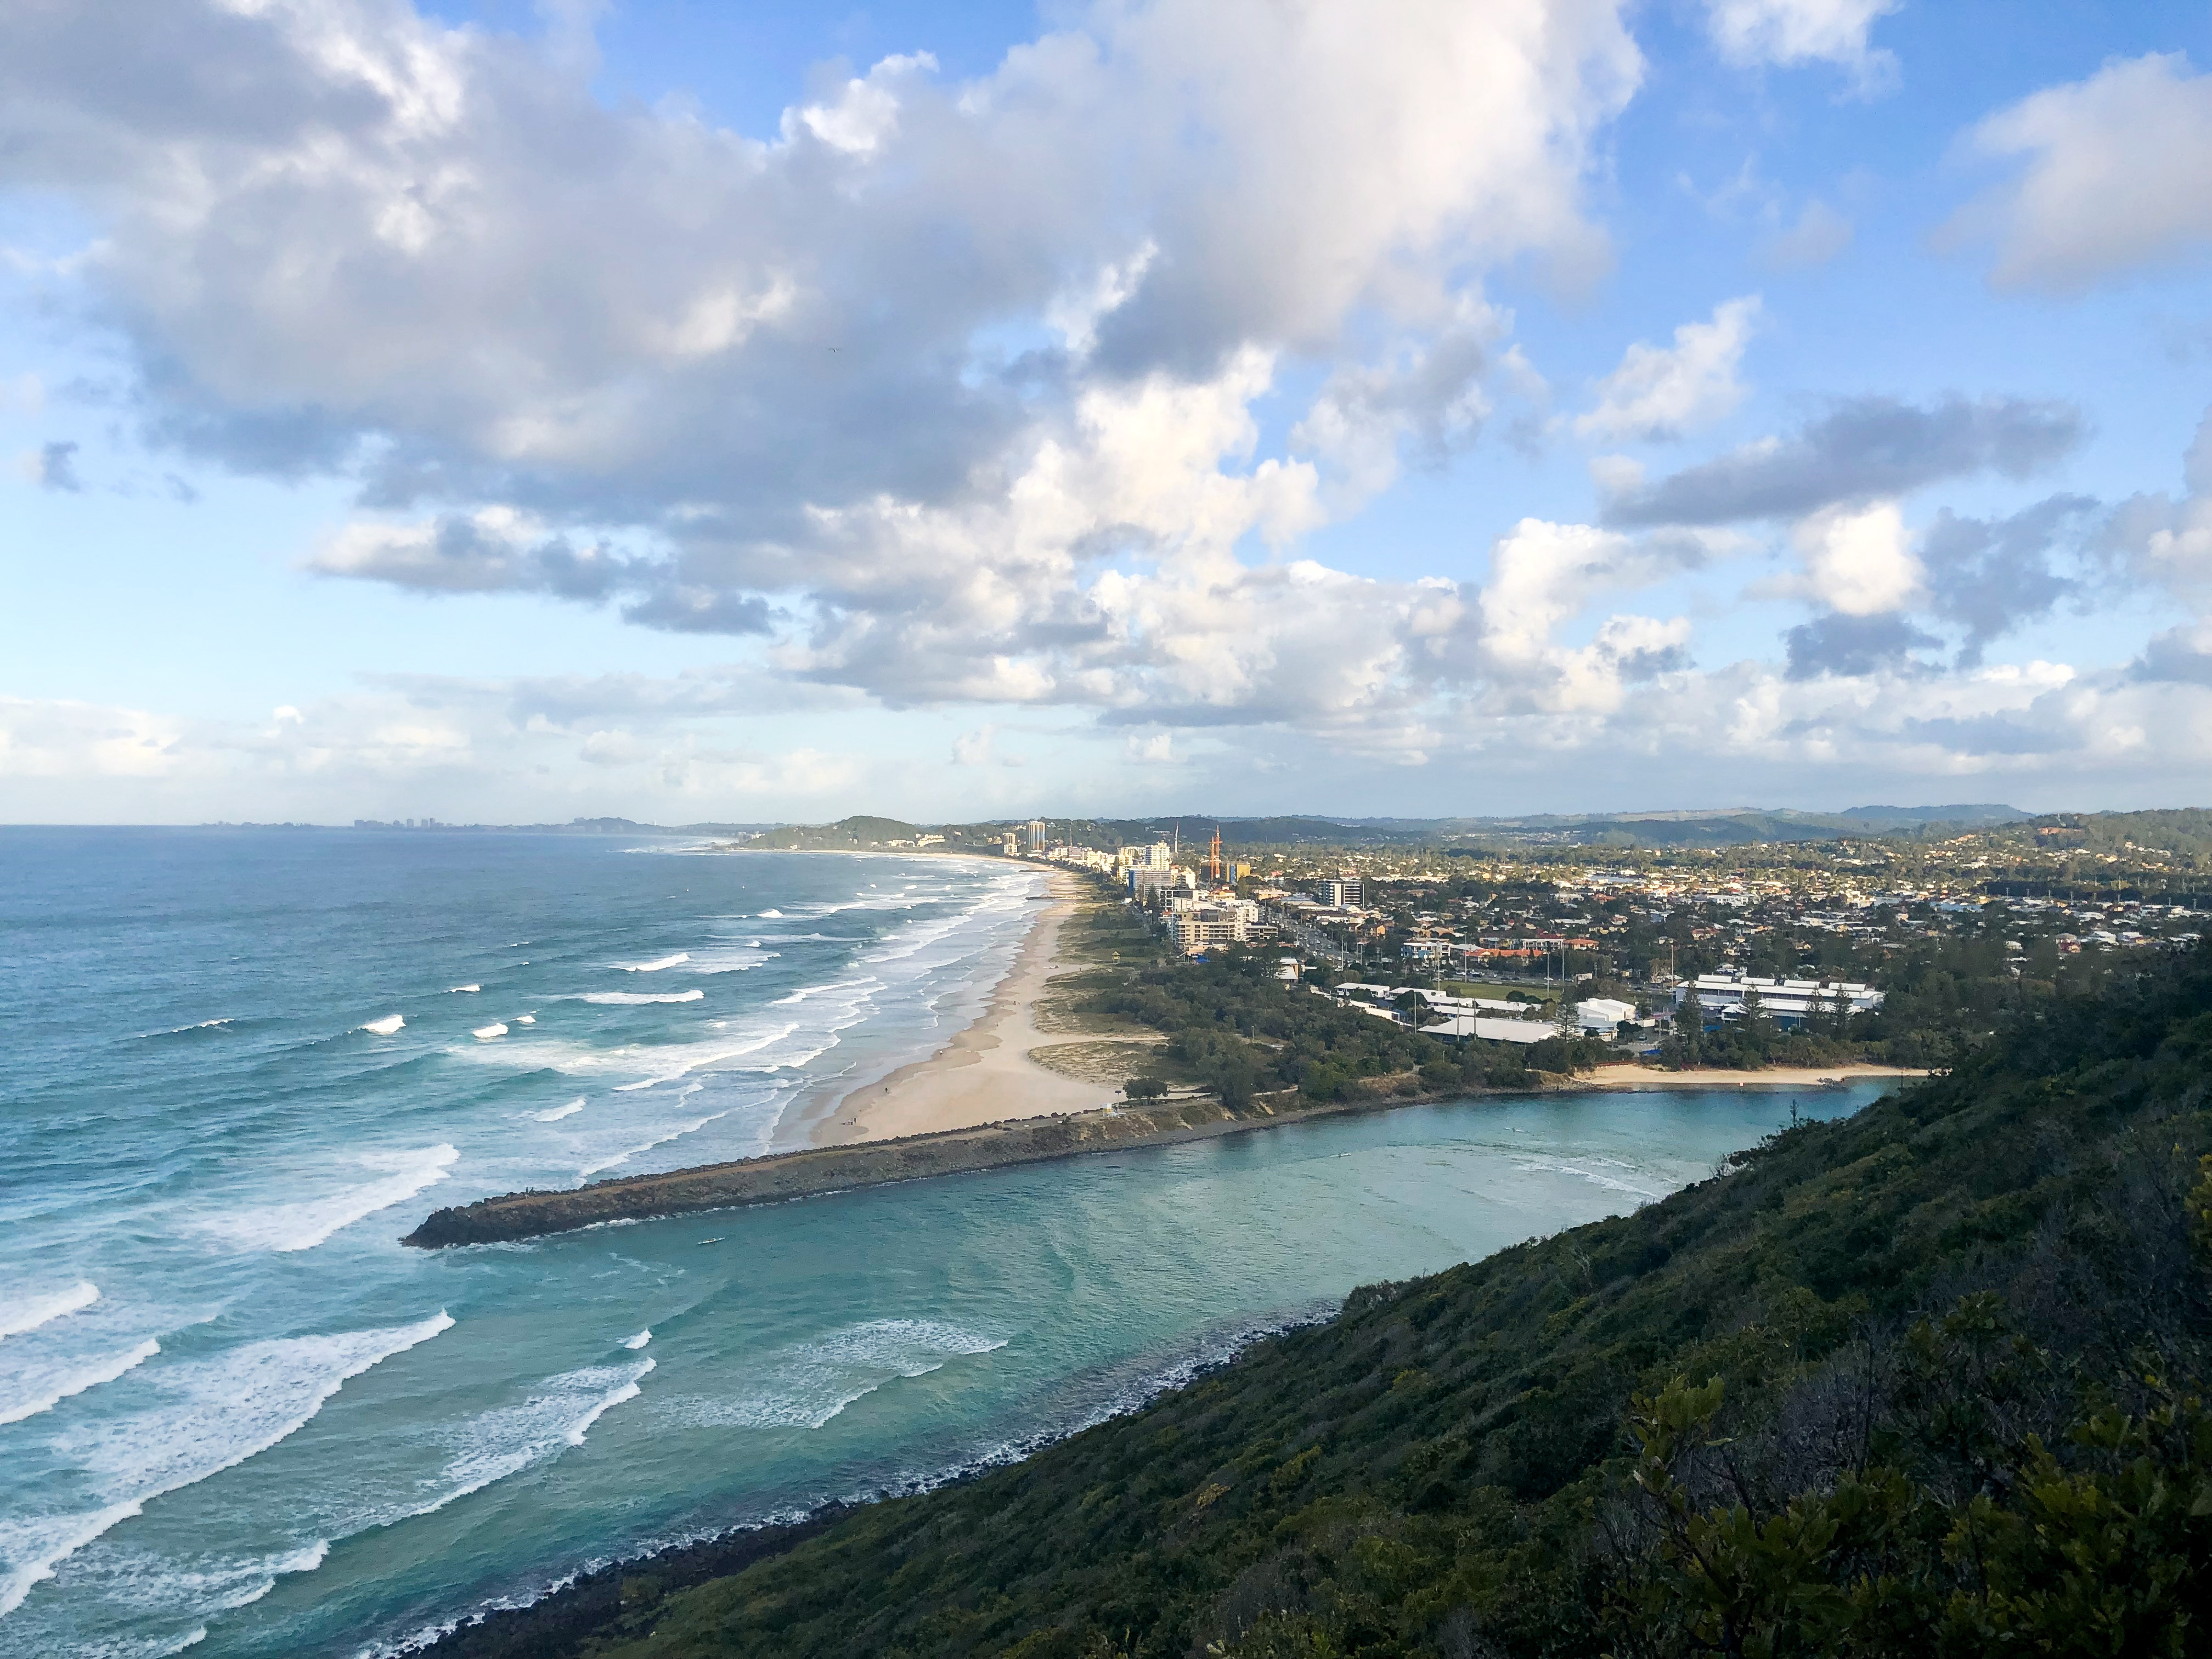 You HAVE to see the gorgeous view from Burleigh - definitely one of the Top 4 Day Trips From Brisbane